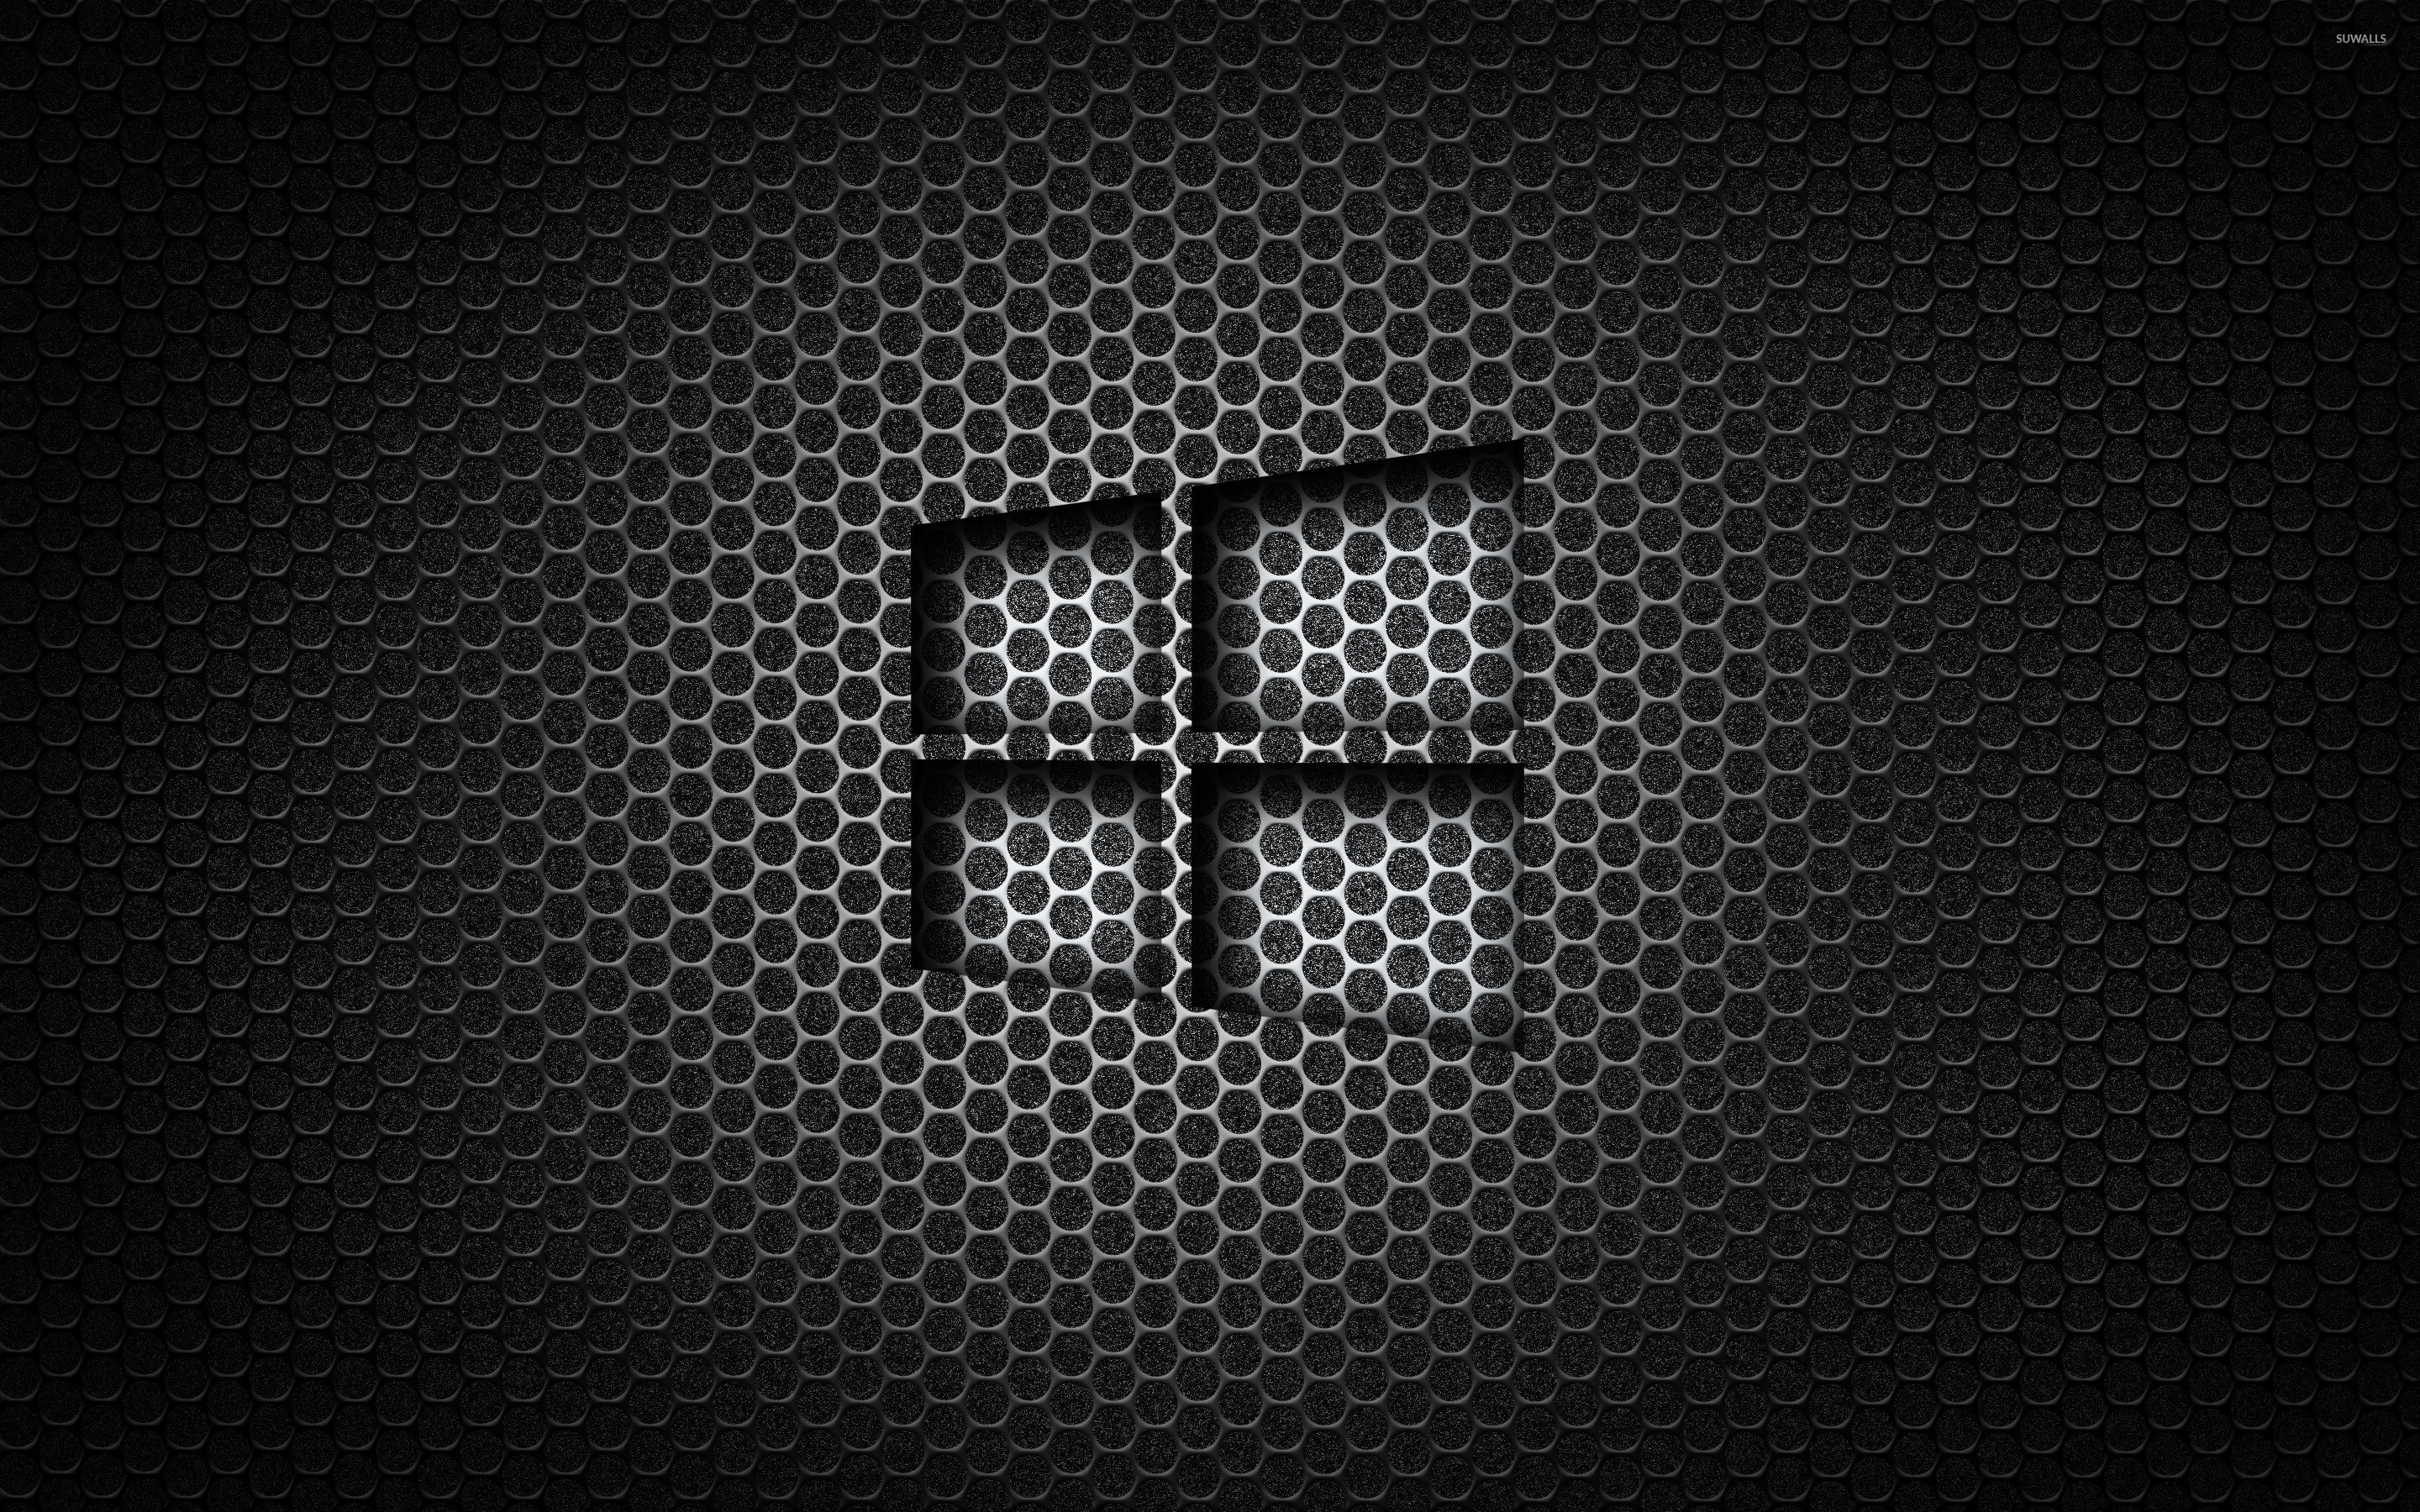 Res: 2880x1800, Windows 10 transparent logo on honeycomb pattern wallpaper